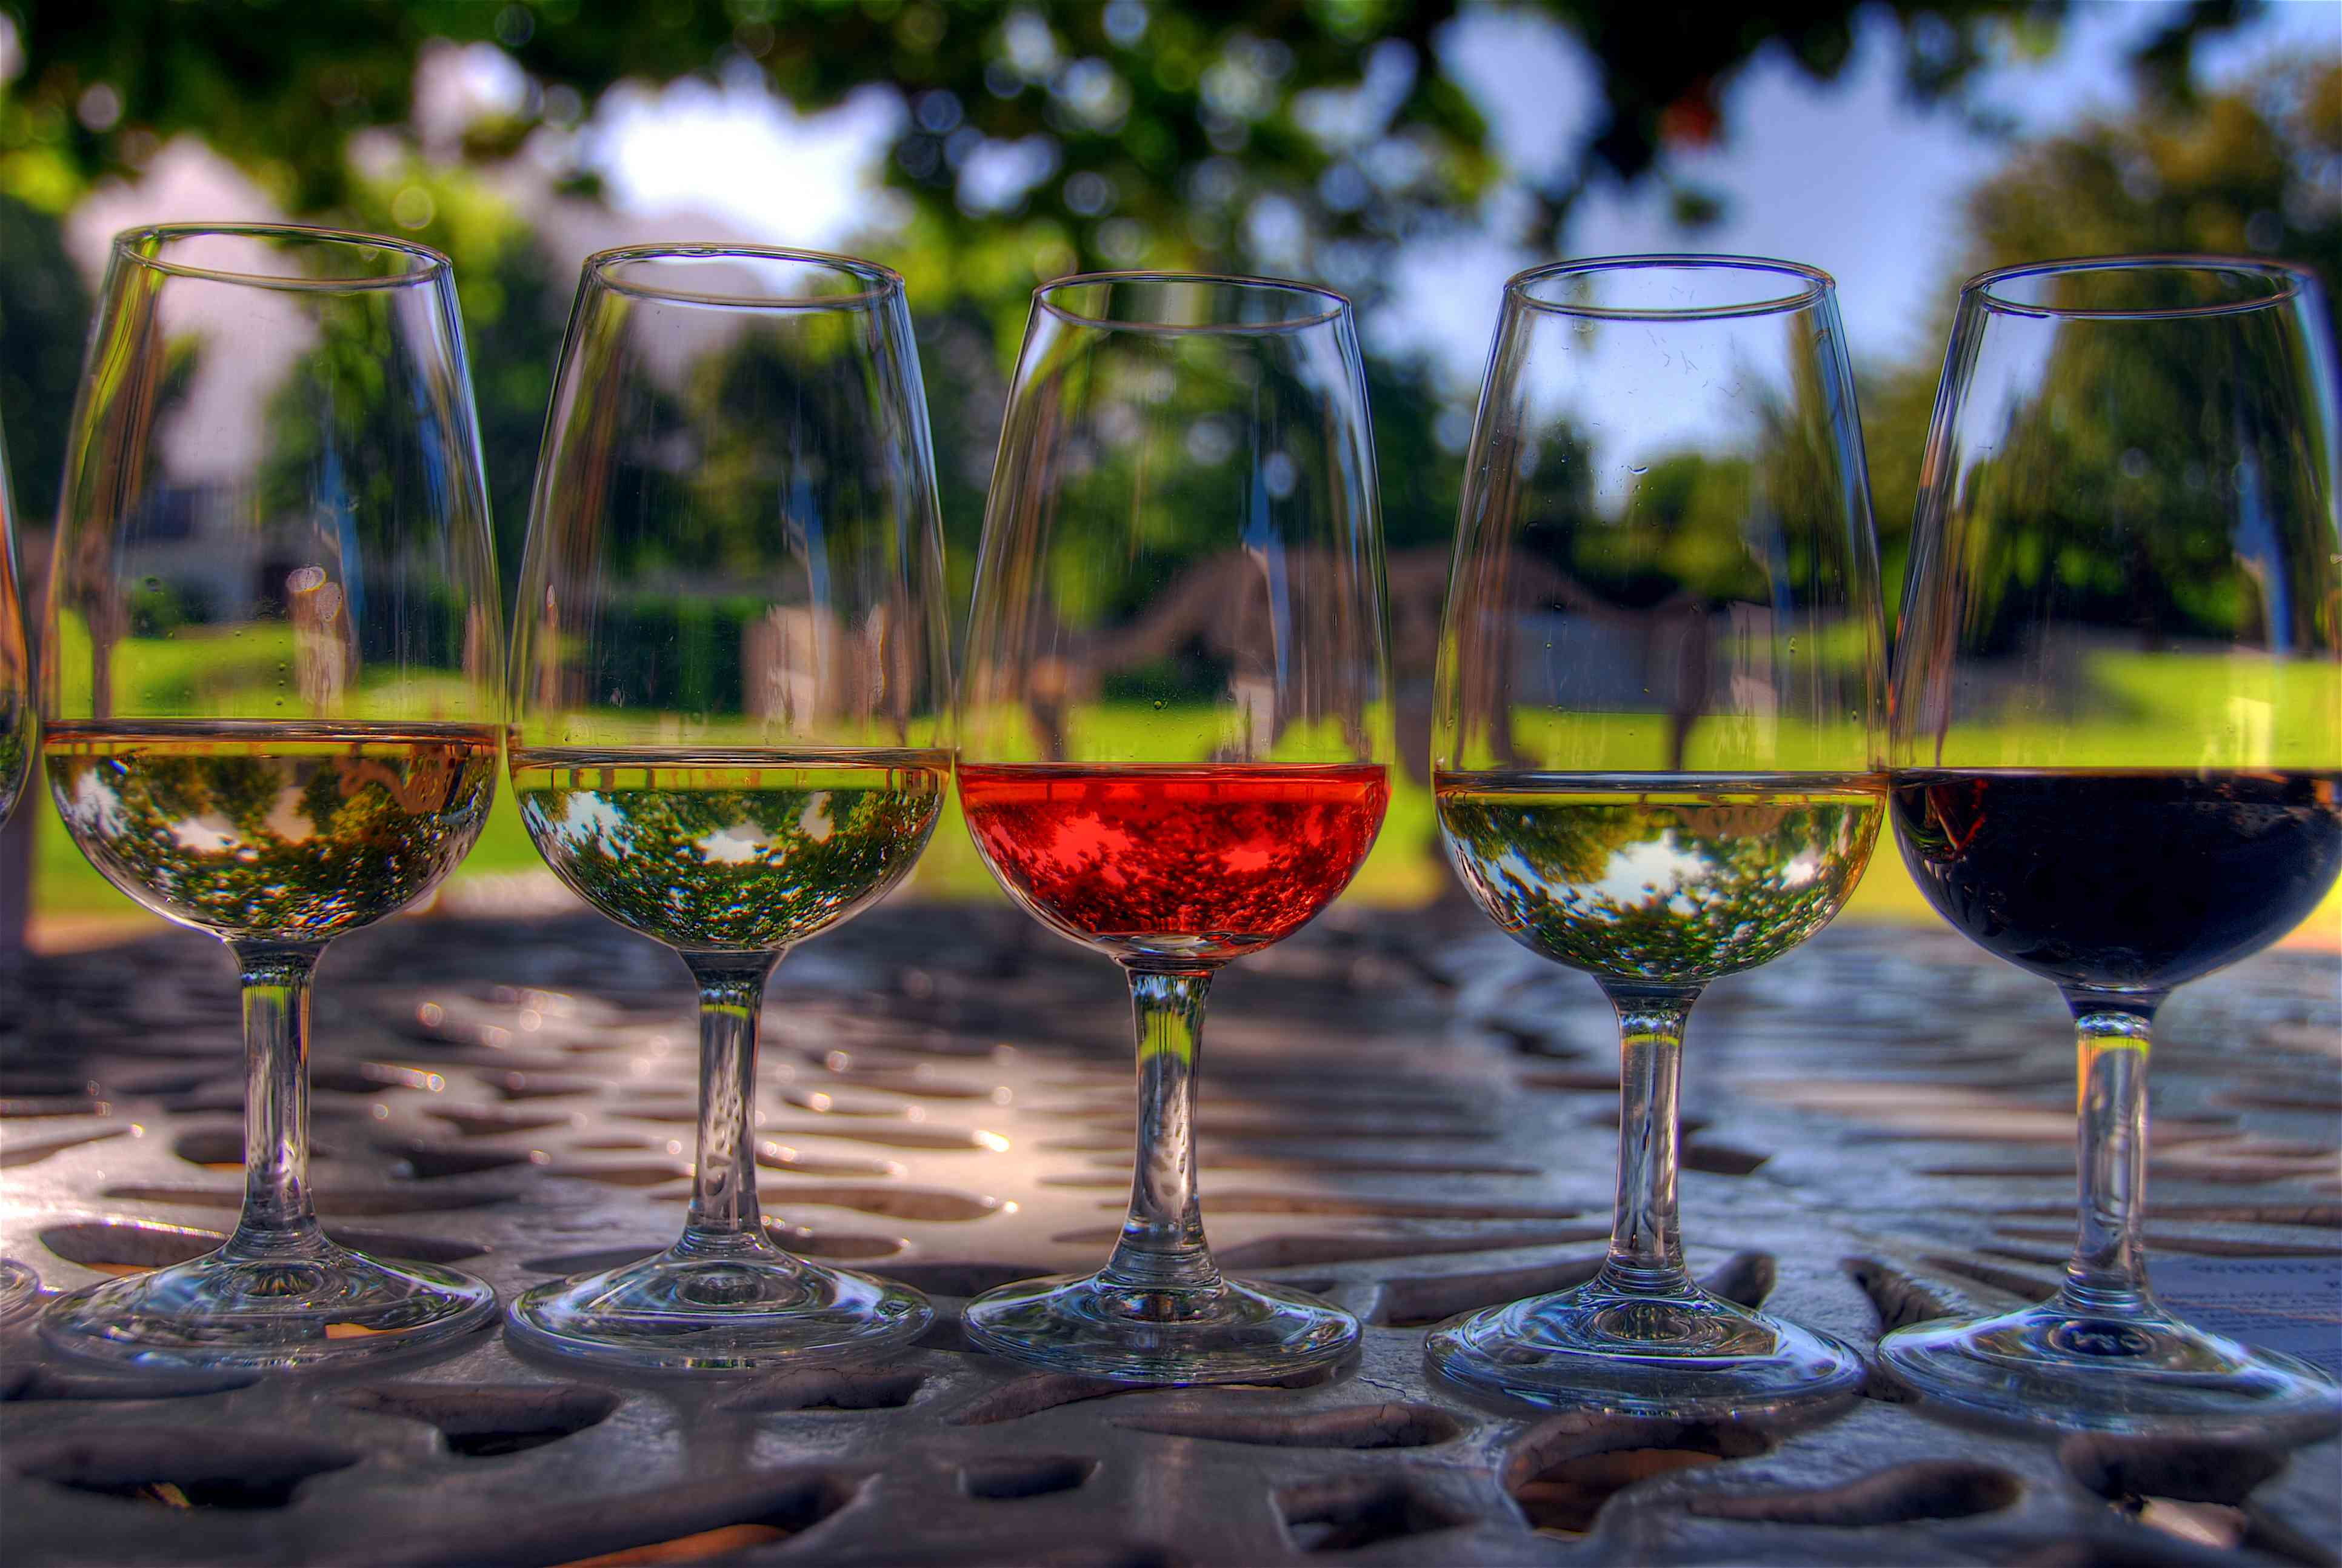 CELEBRITY CRUISES UNCORKS FULL-BODIED ONBOARD WINE …